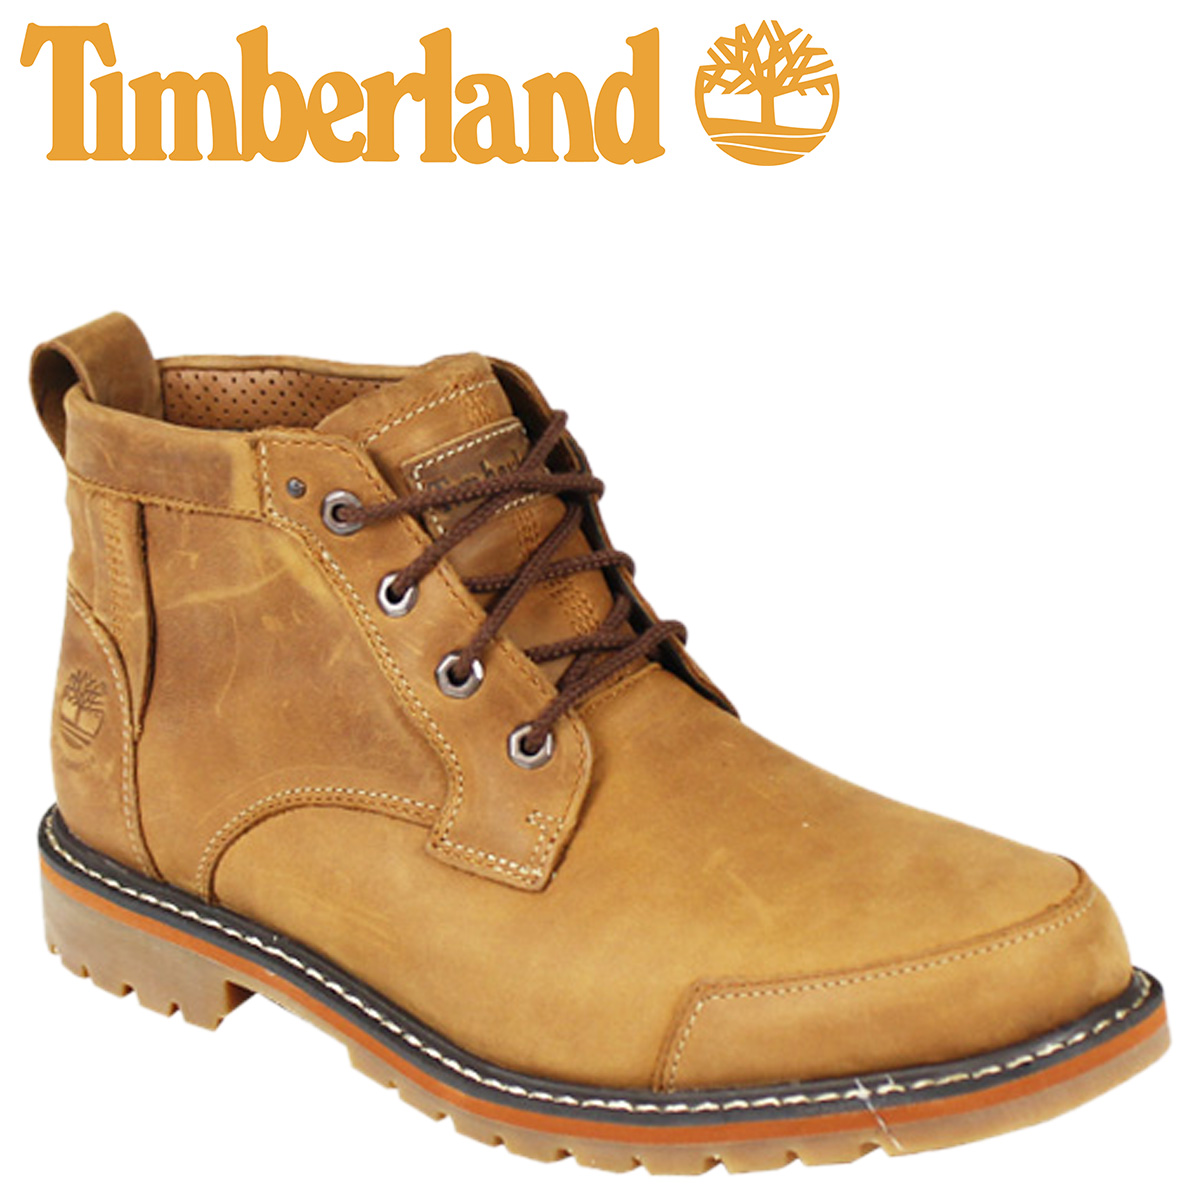 SOLD OUT  Timberland Timberland Earthkeepers chestnut Ridge chukka  waterproof boots EK CHESTNUT RIDGE CHUKKA WATERPROOF leather 5530A Brown  mens a78cdd5db